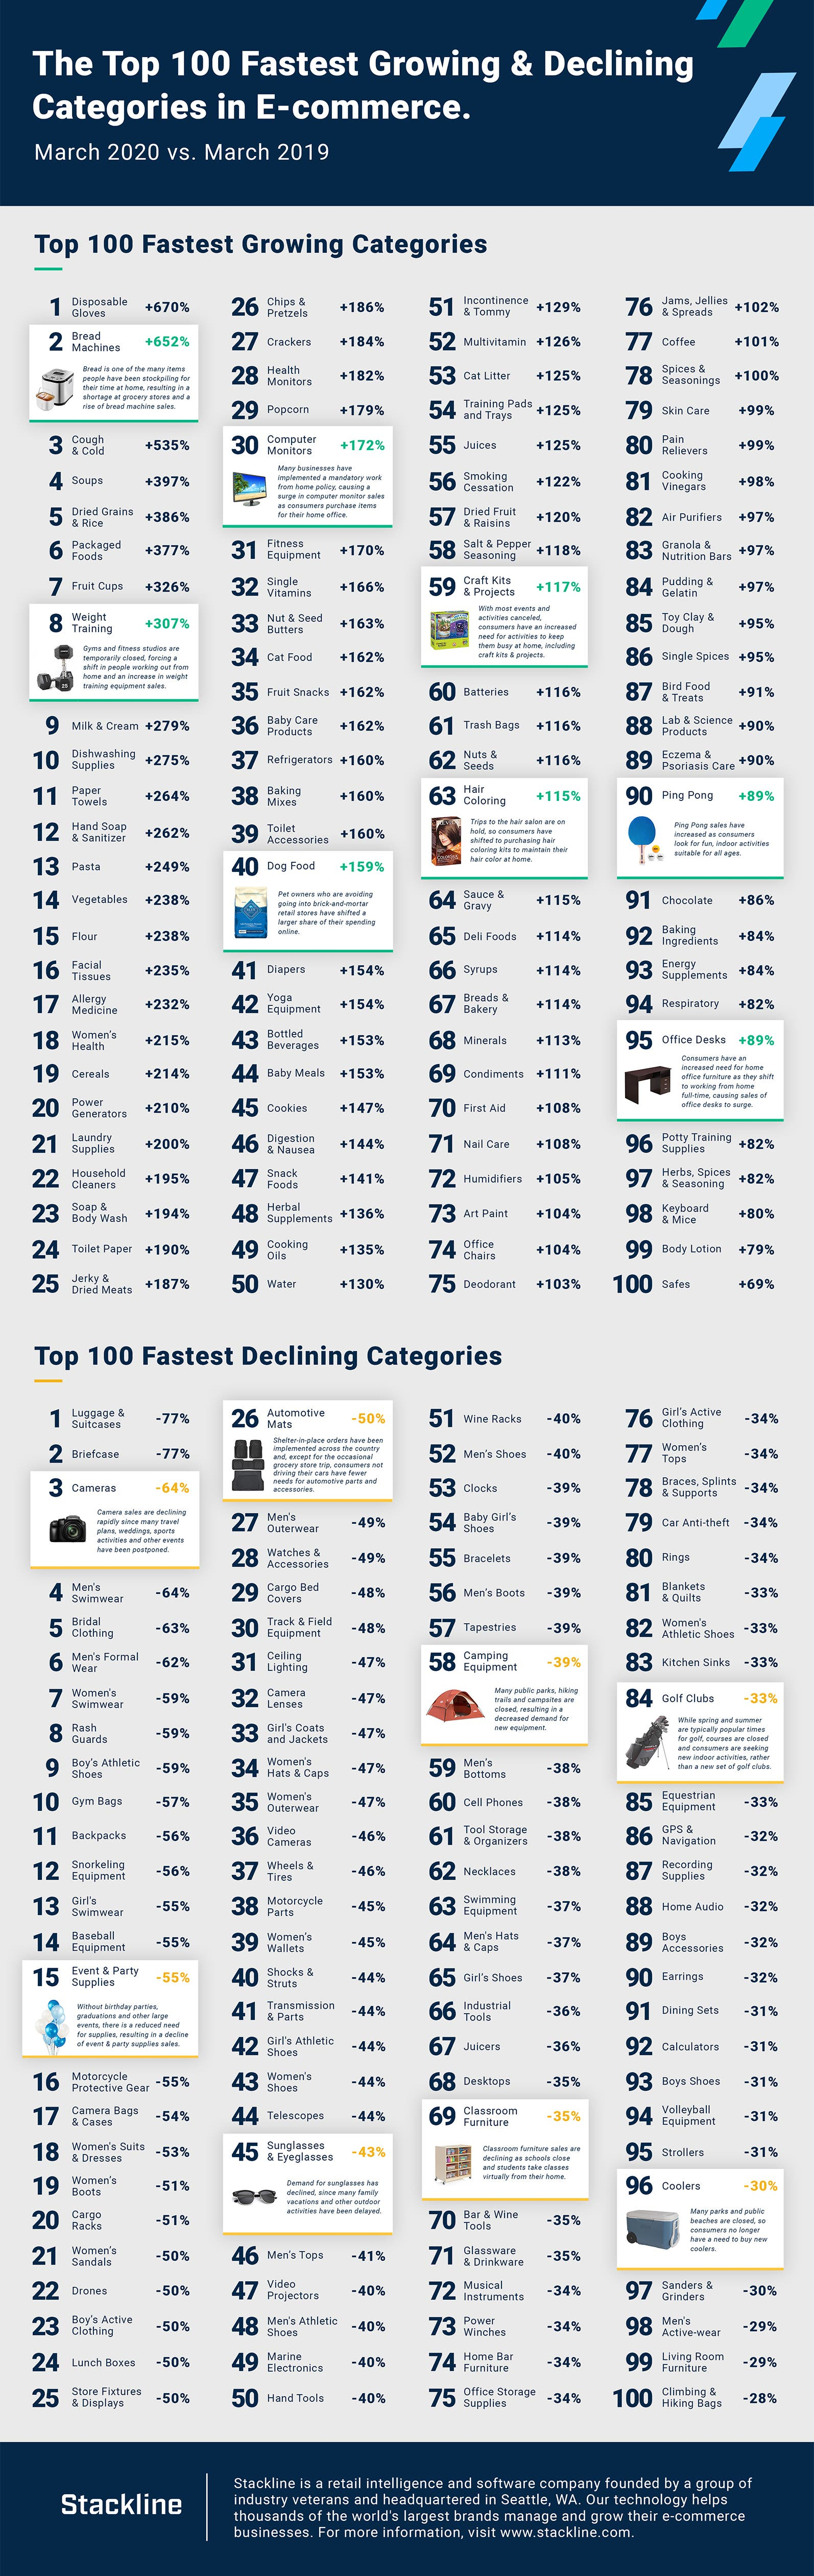 Top 100 fastest growing and declining categories in e-commerce. (Source: Slackline)